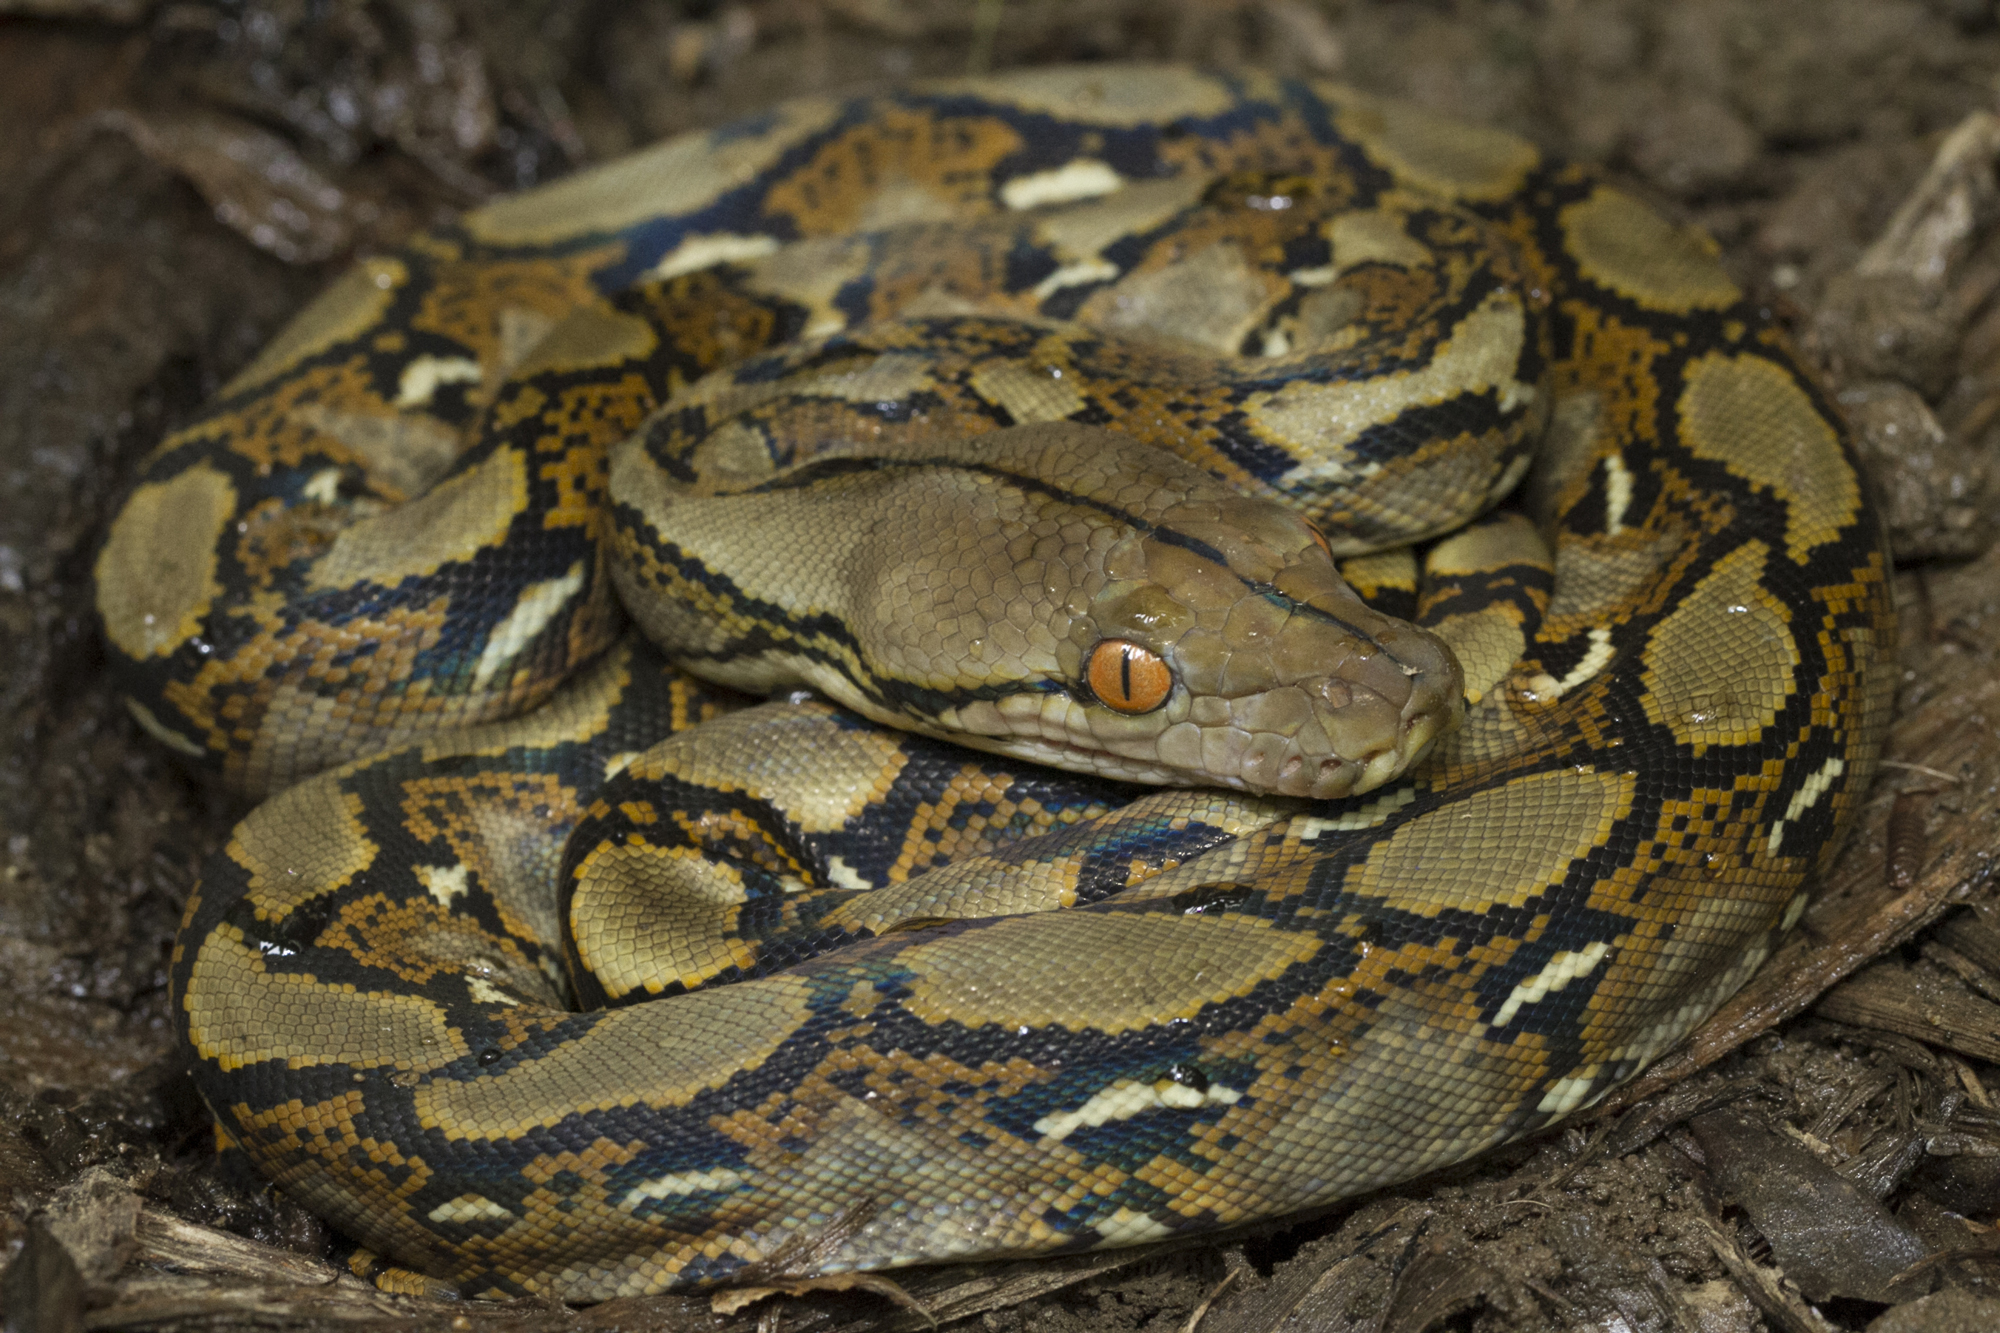 The Burmese Python is one of the many invasive species found in Everglades National Park.